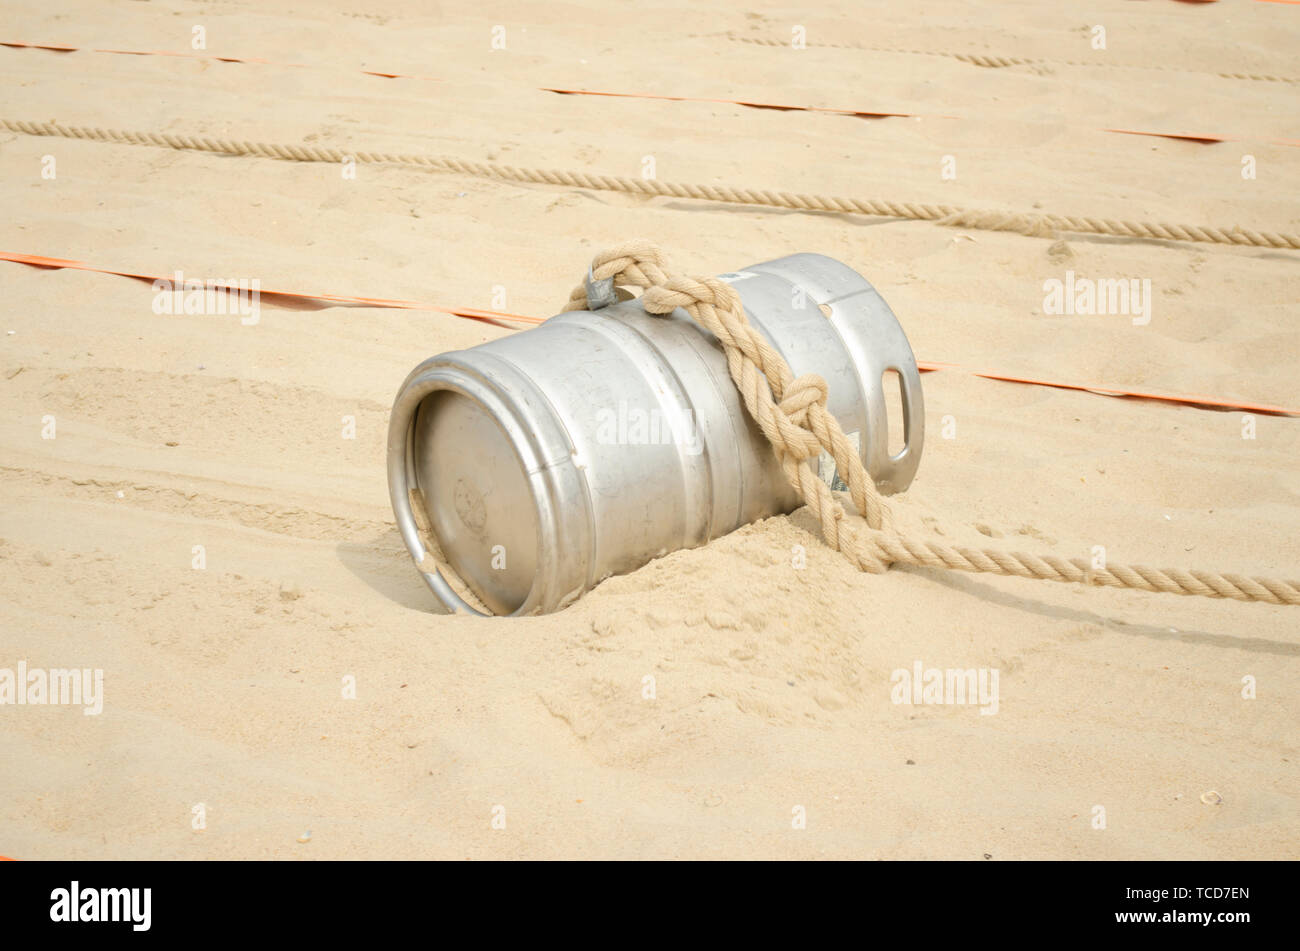 Sports competition with a barrel and a rope on the beach. - Stock Image